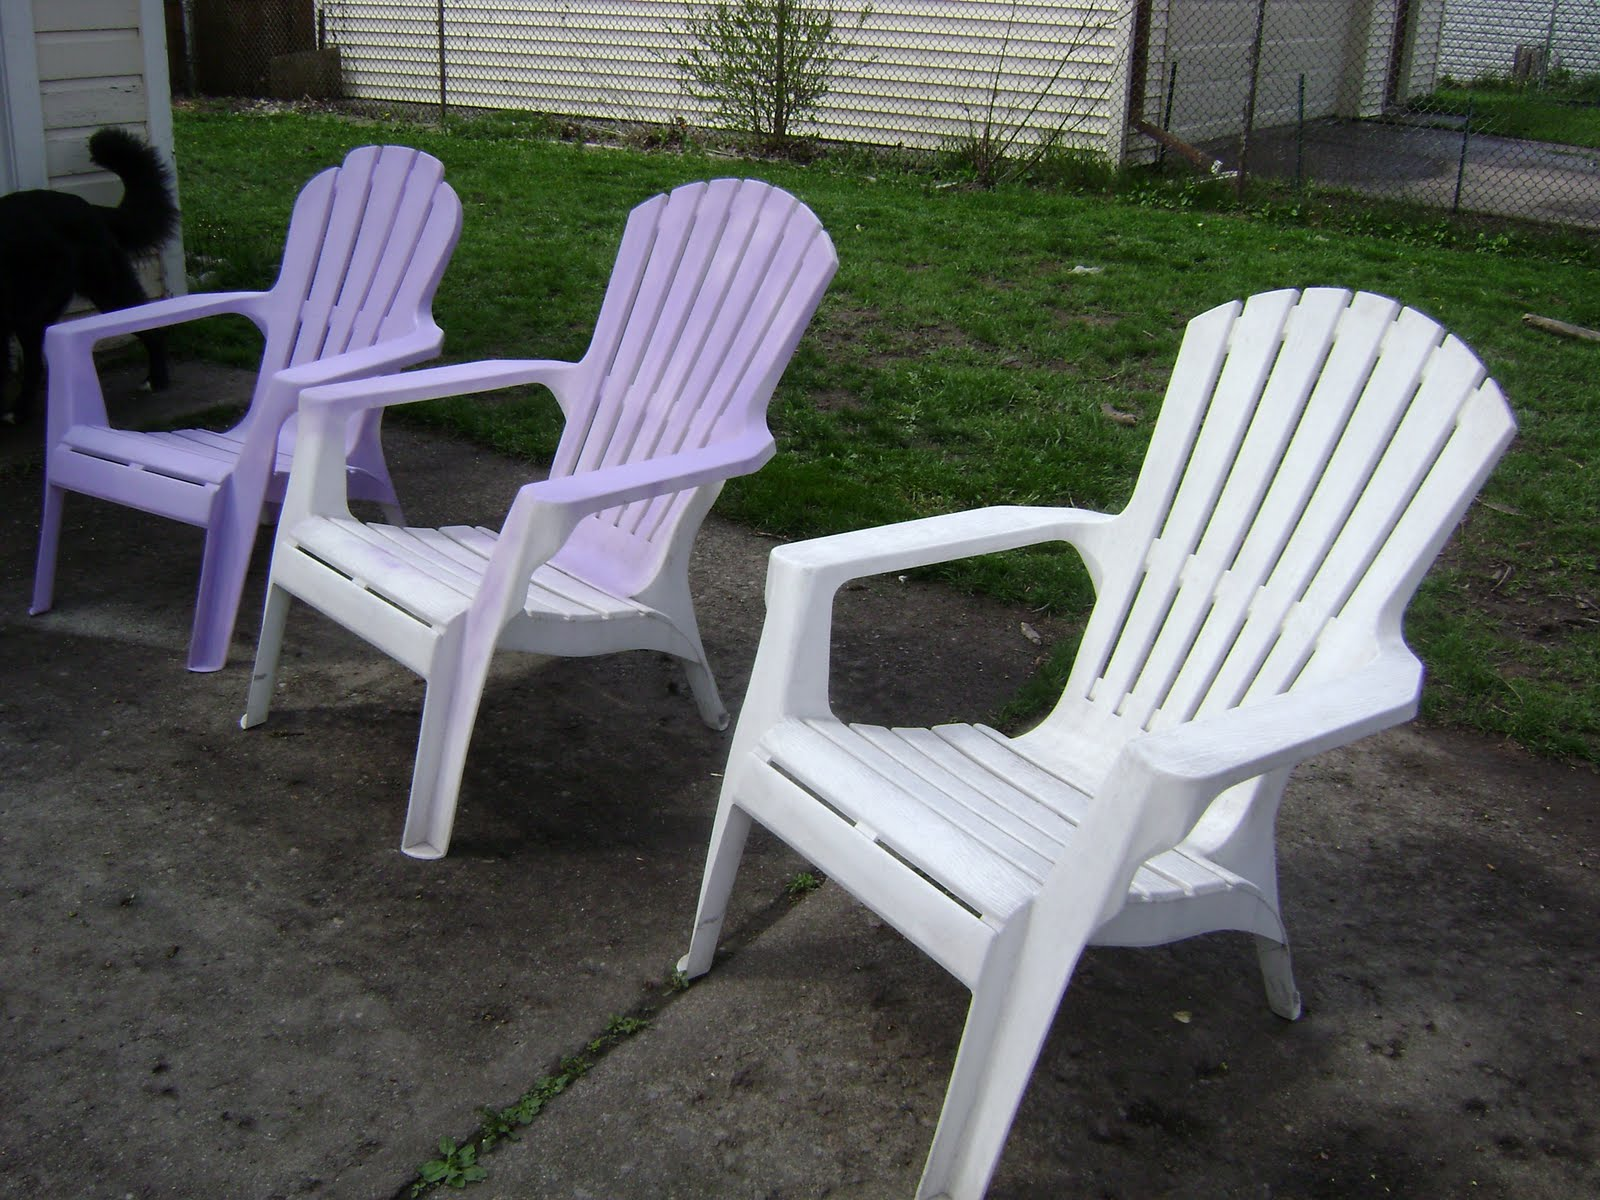 Adirondack Chair Plastic Riparata Goody Goody Gumdrop Impossible To Clean